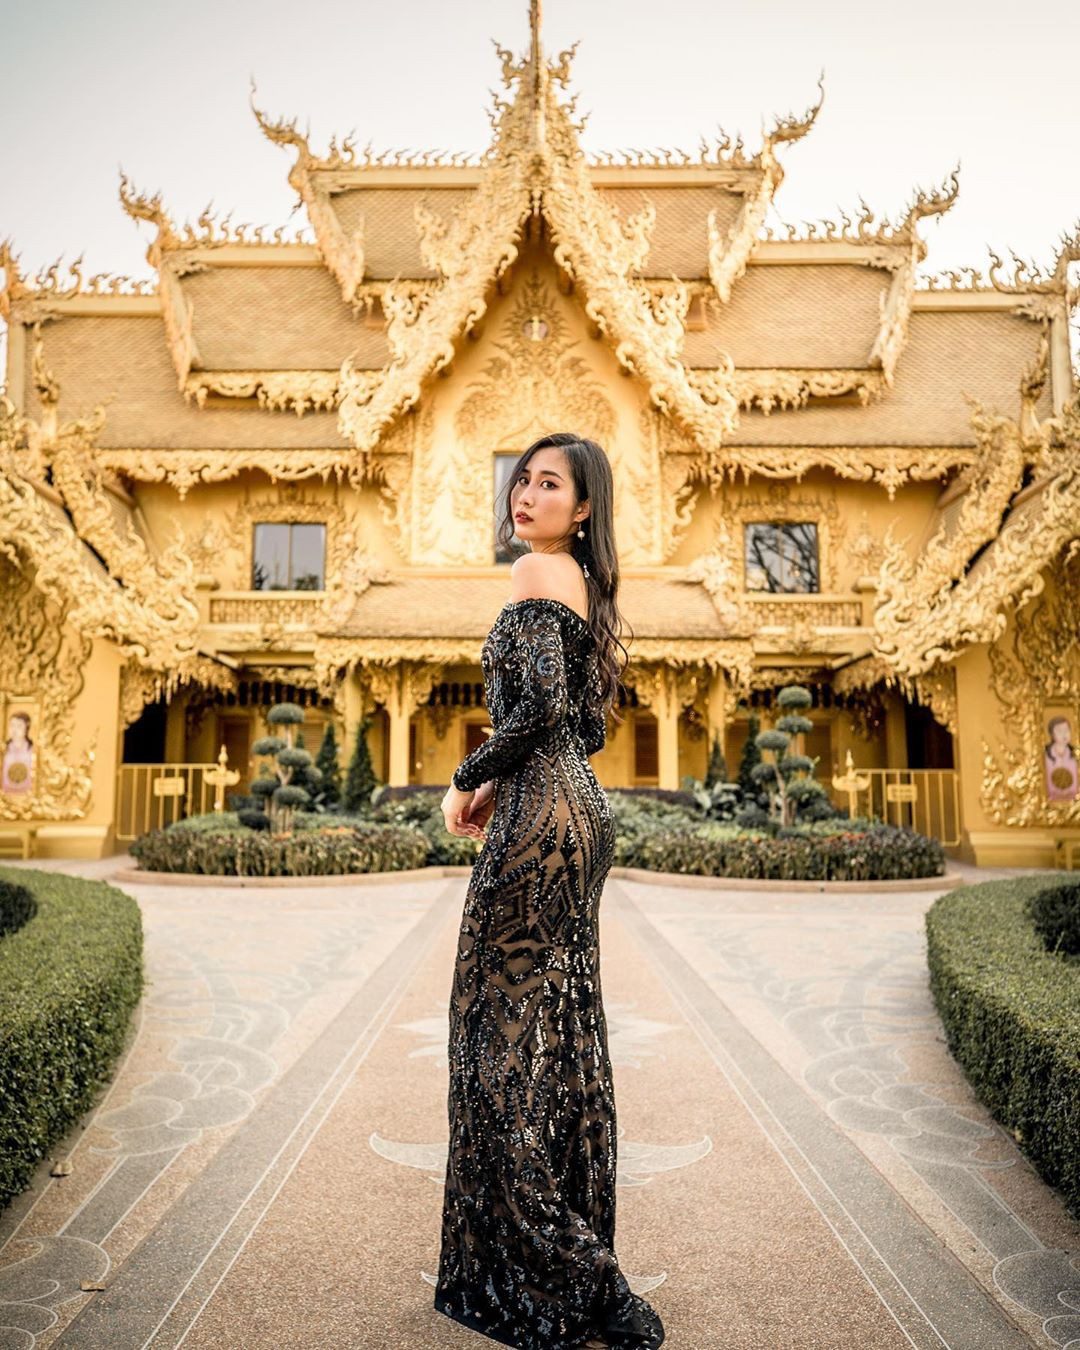 ghen-ty-cuoc-song-sang-chanh-cua-blogger-tina-lee (4)